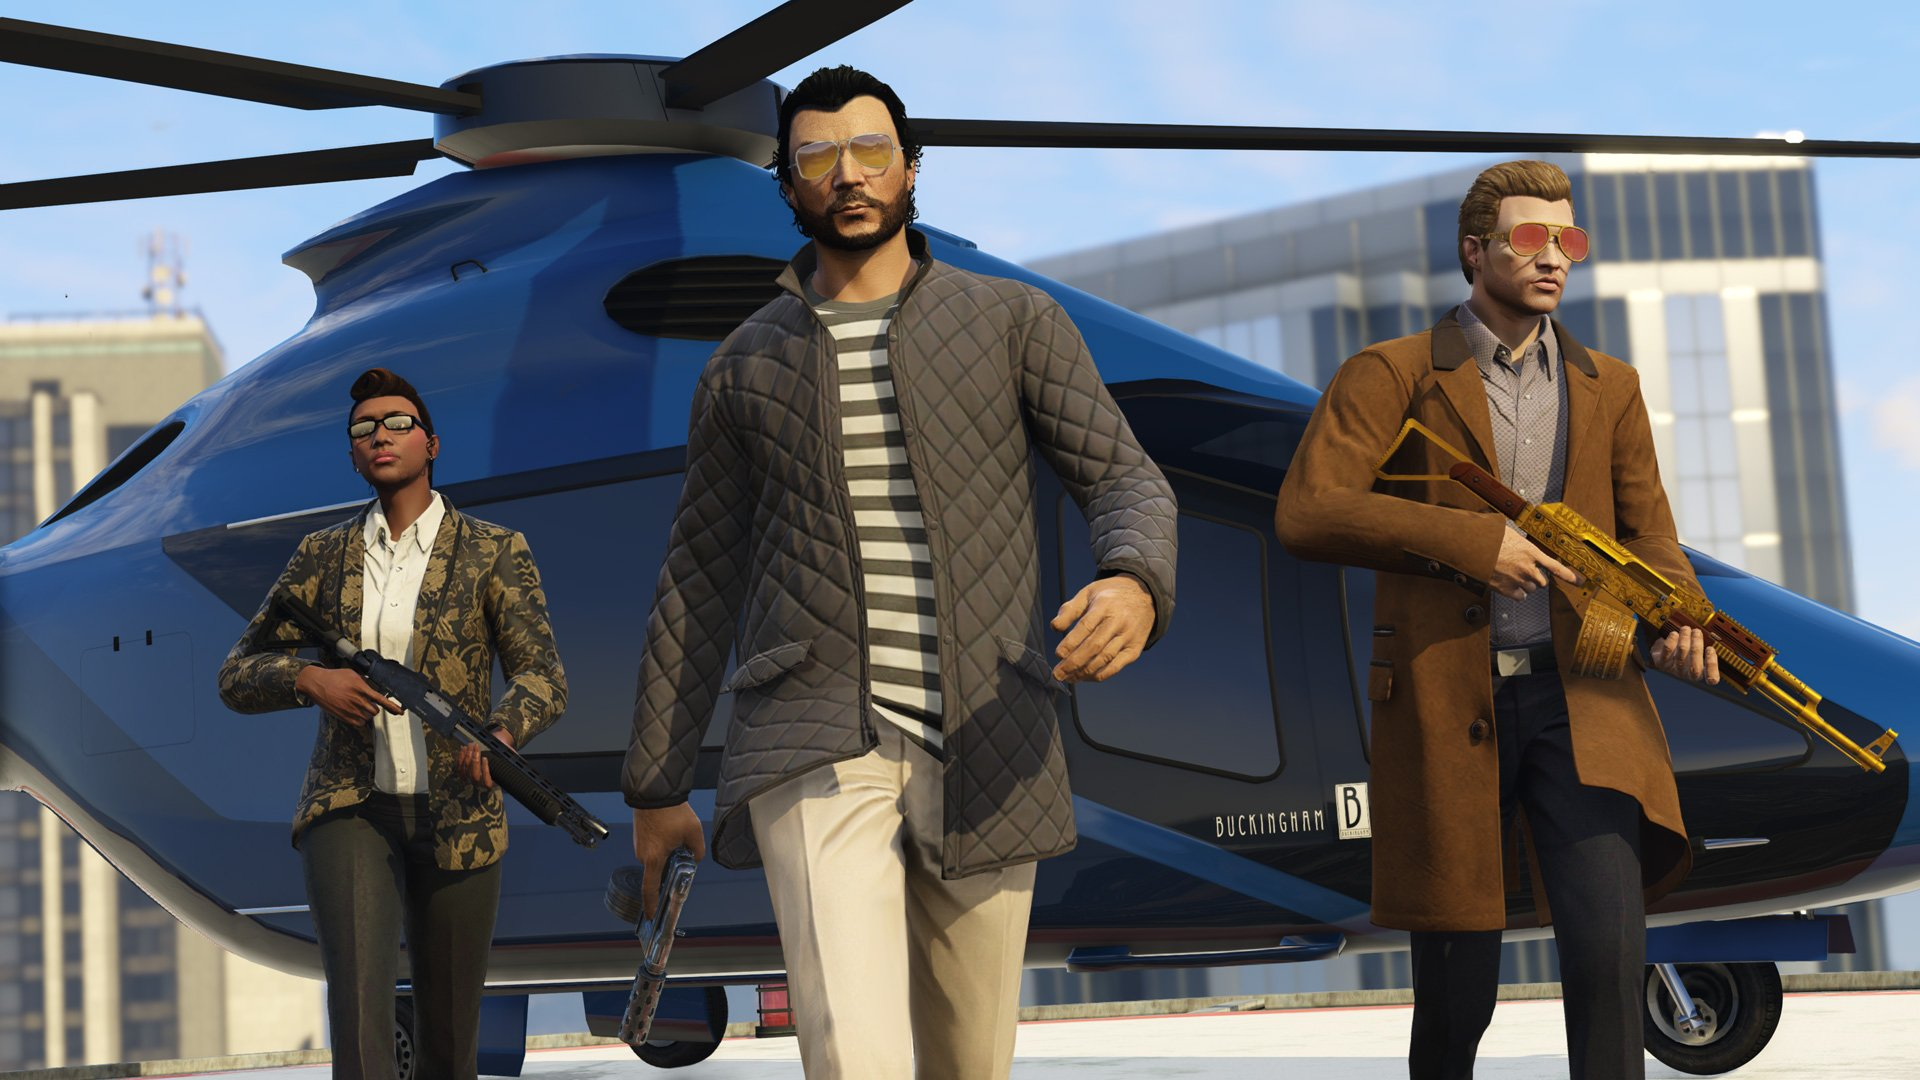 GTA Online has a new approach to Heists, and the first one is a big job screenshot